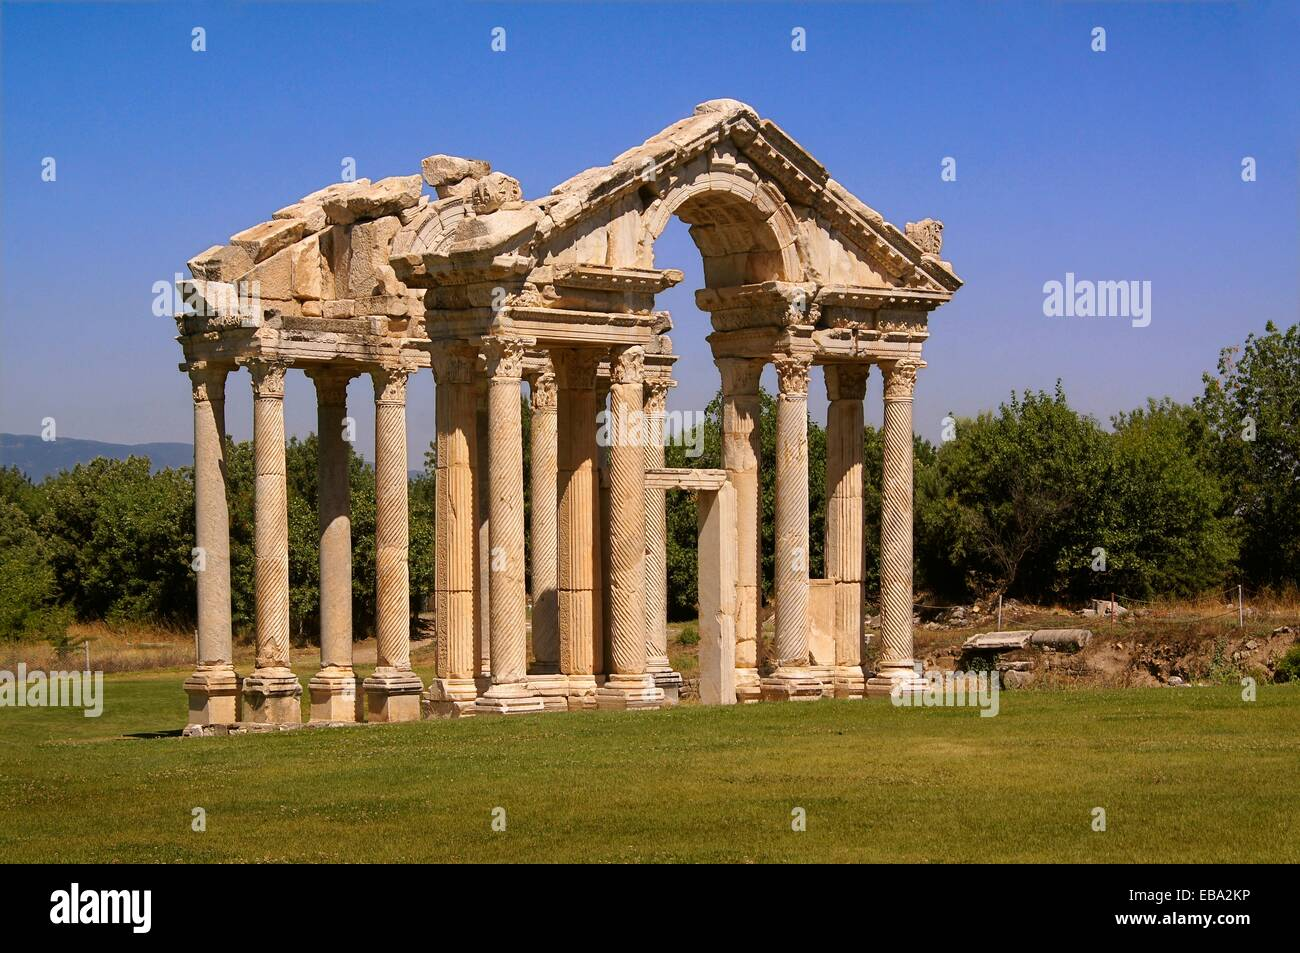 100 140 230 62 according after antiquity Aphrodisias Aphrodite archaeology architecture Asia before being building - Stock Image